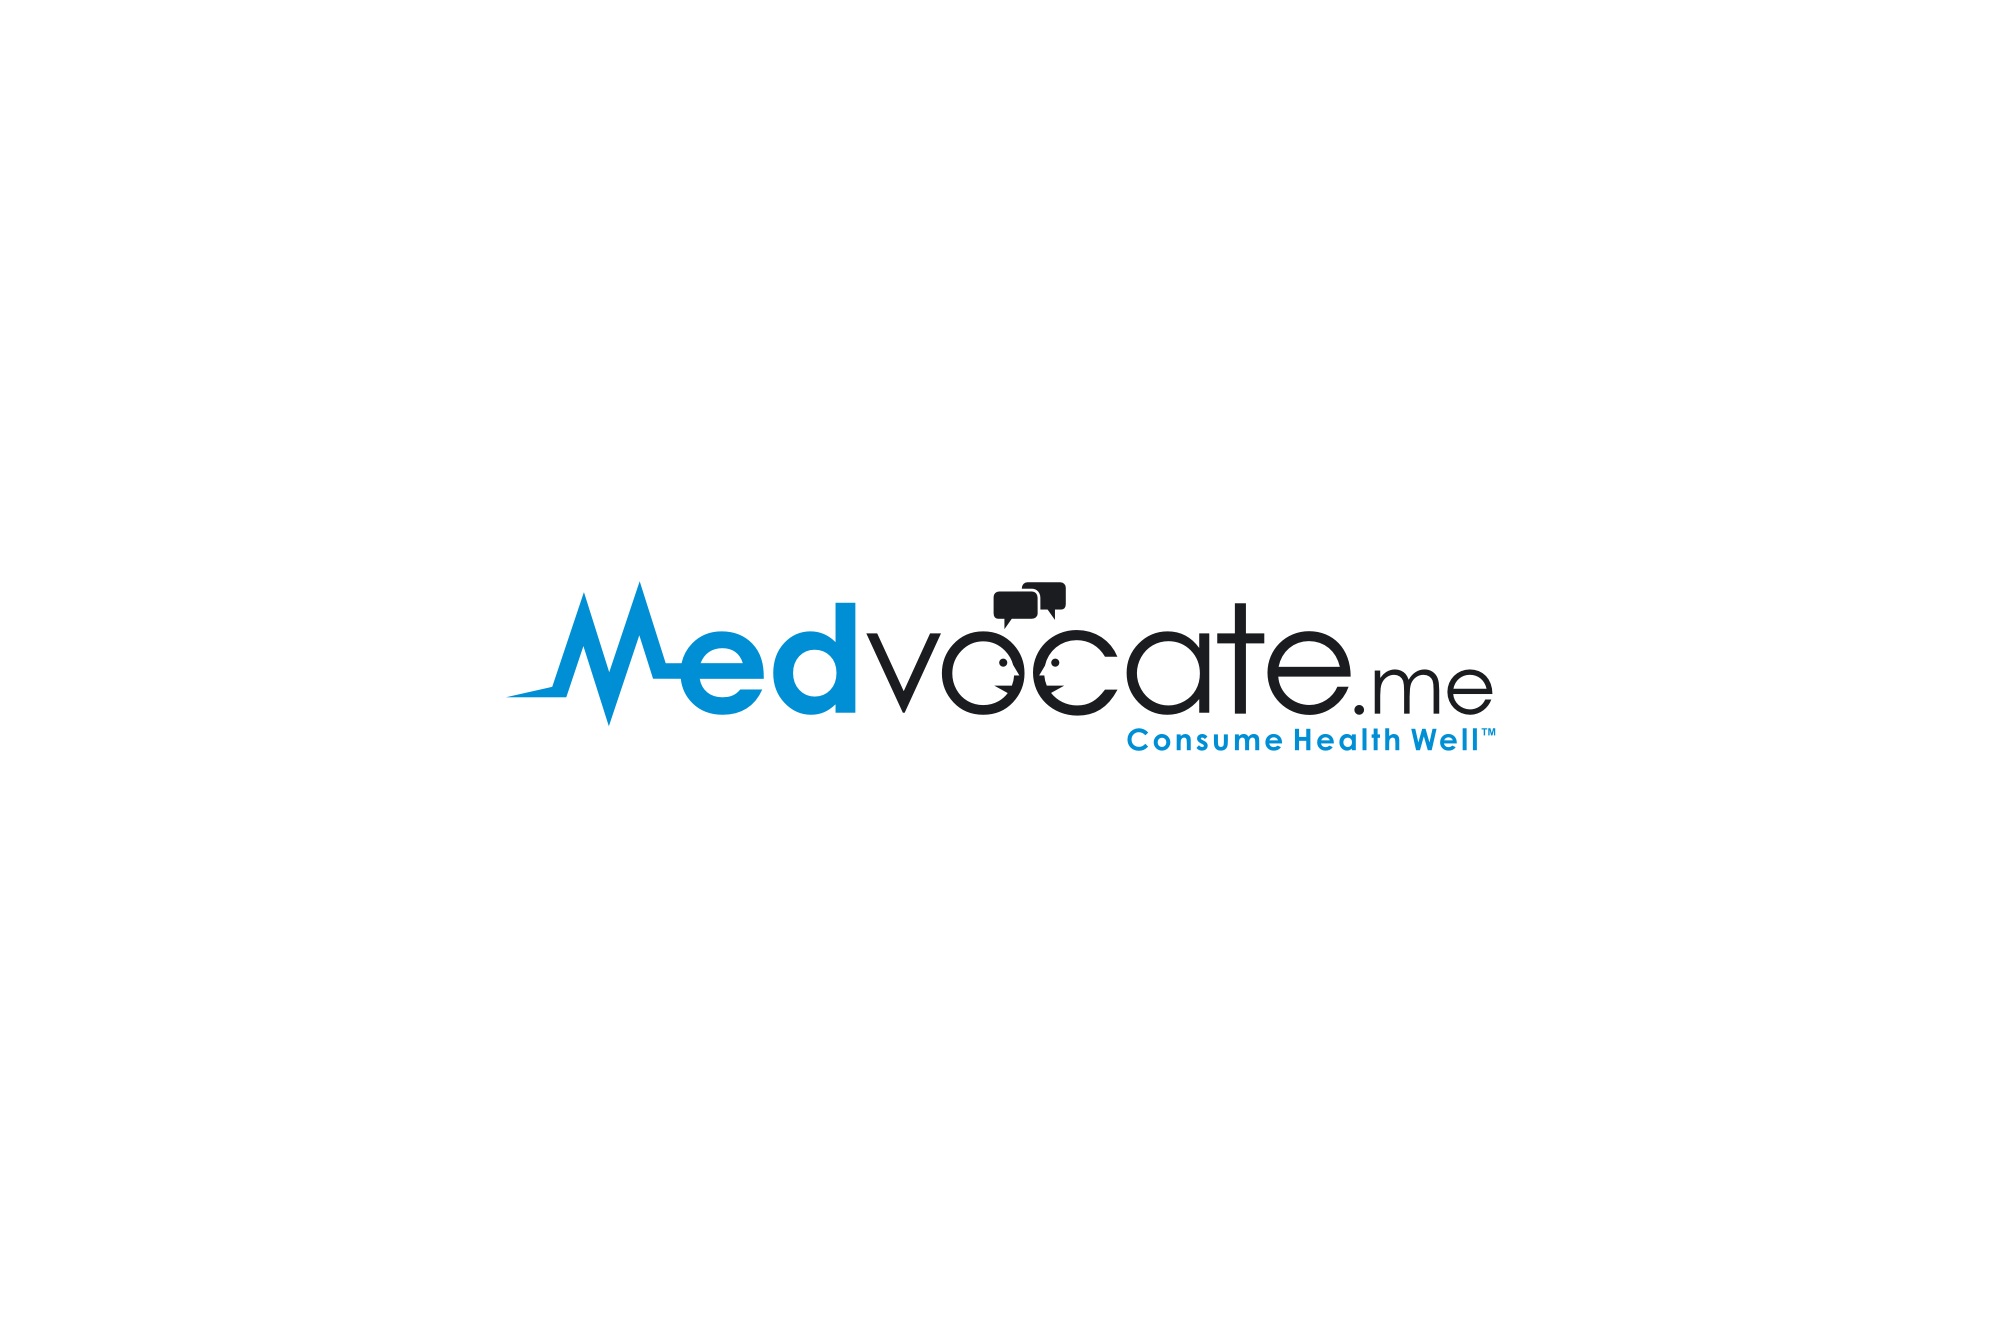 MEDVOCATE.ME  (Additional $100 direct to 99designs contest winner)